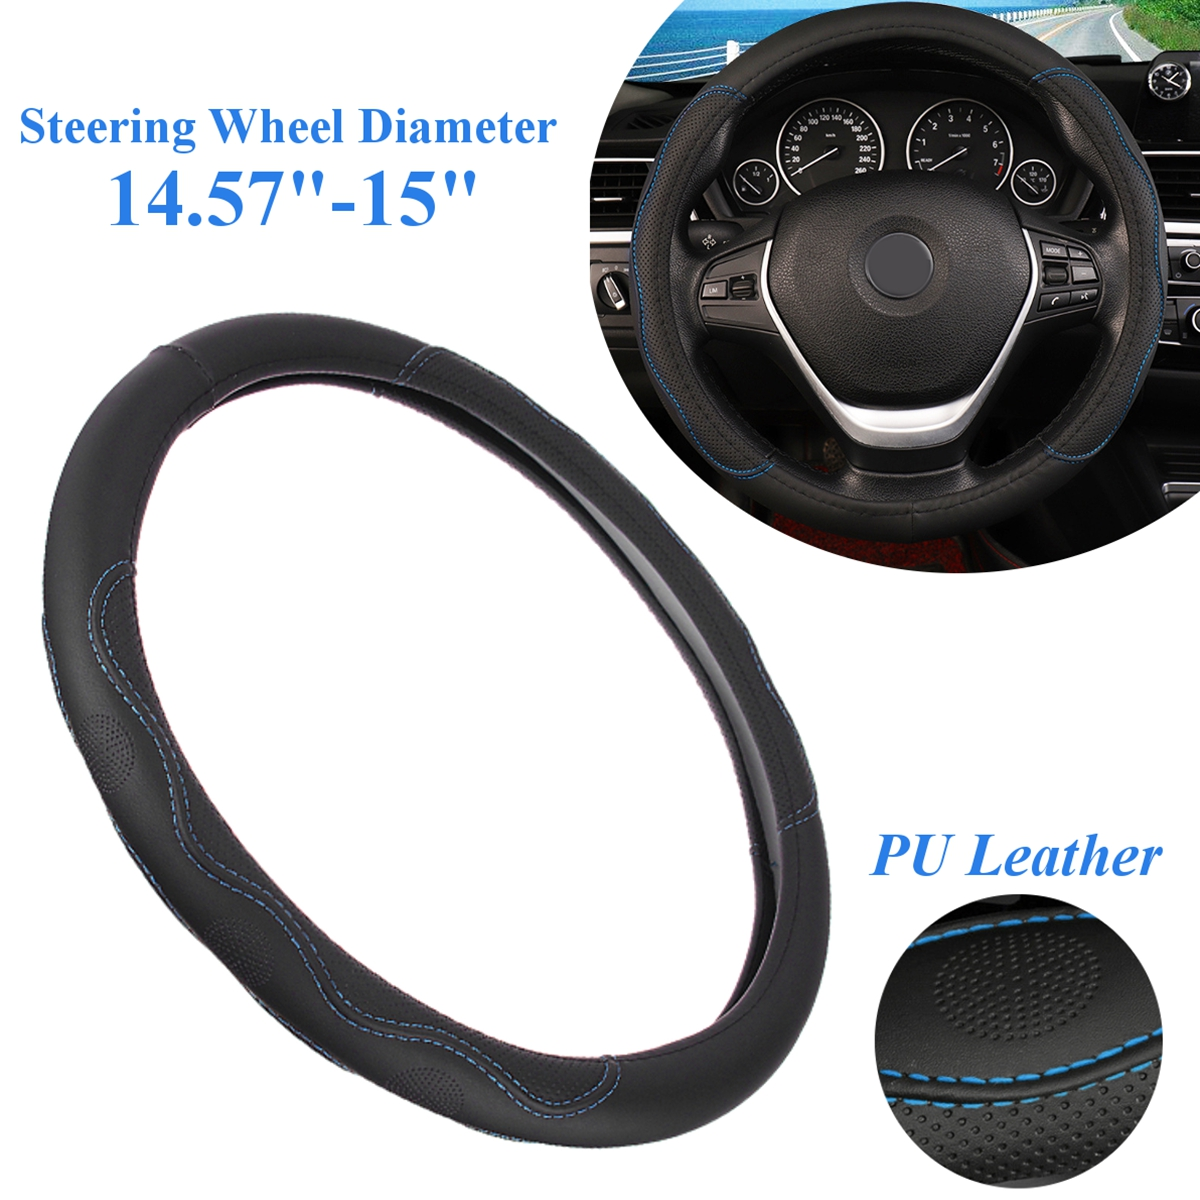 37-38cm Car Steering Wheel Covers PU Leather for Toyota/Honda/Nissan/Mazda